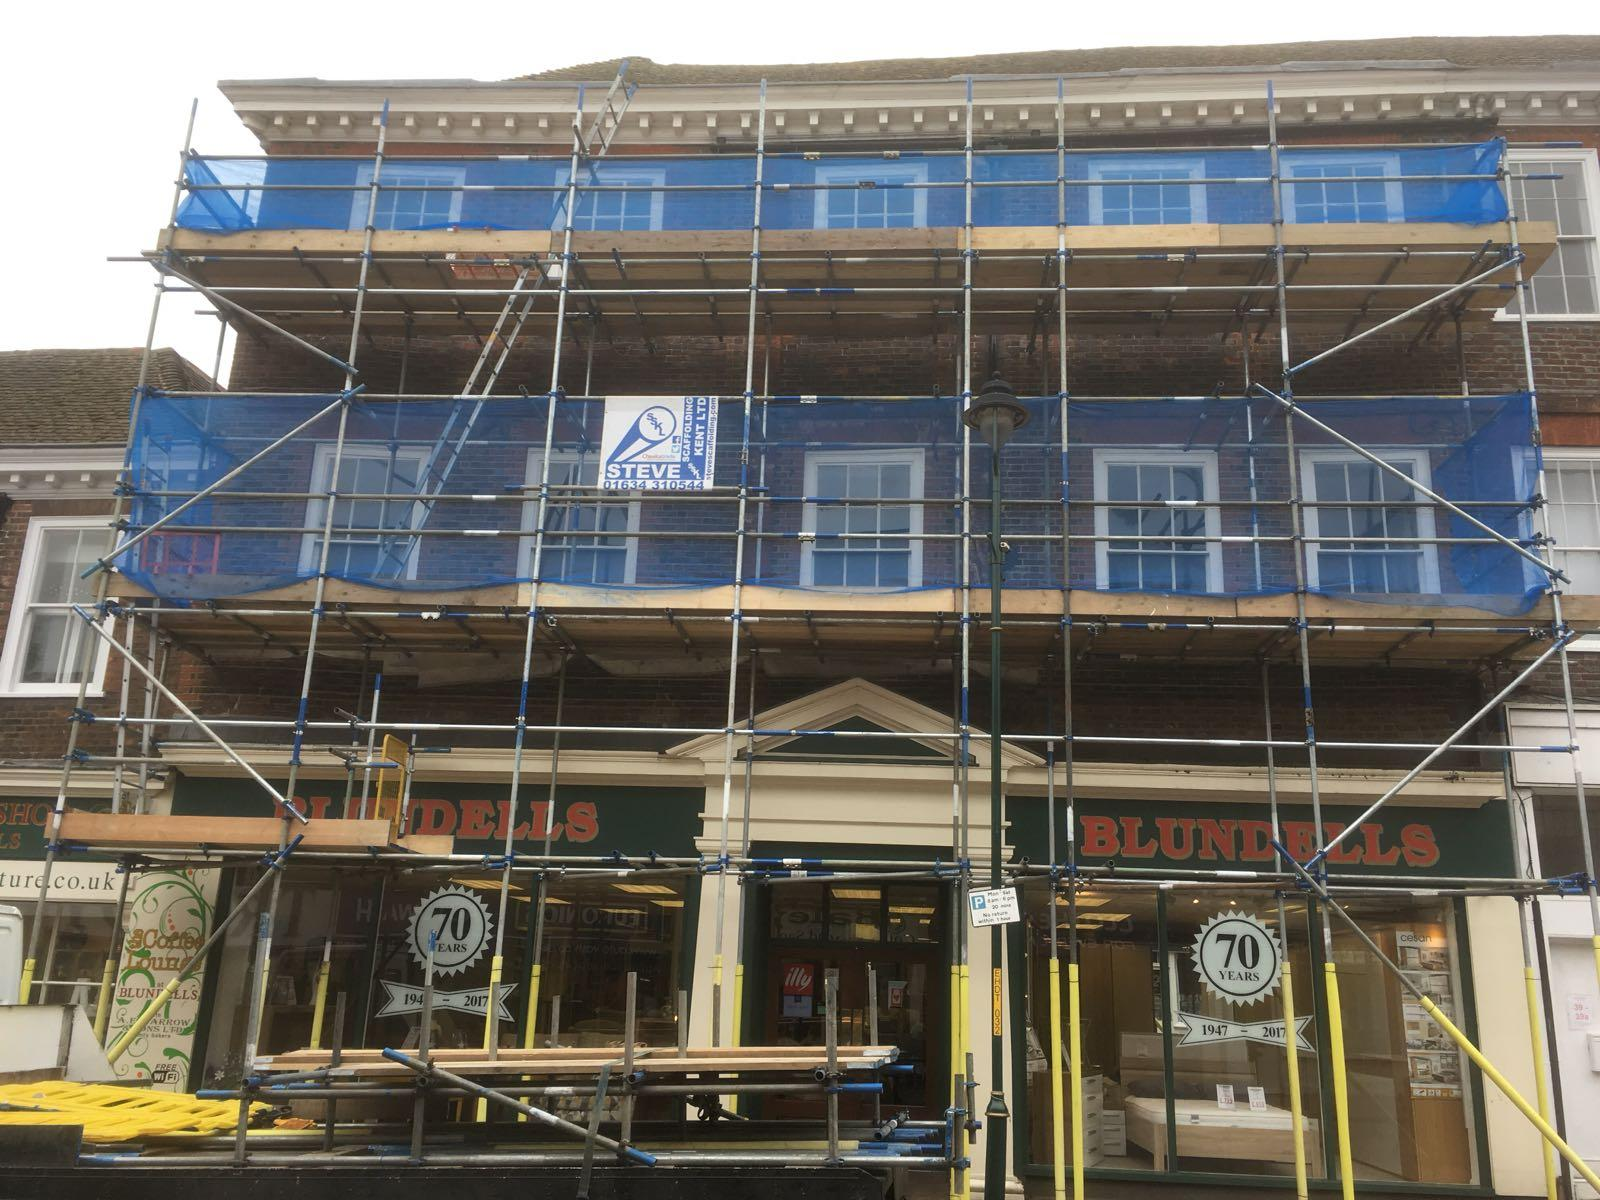 Steve Scaffolding Kent Ltd Commercial Work